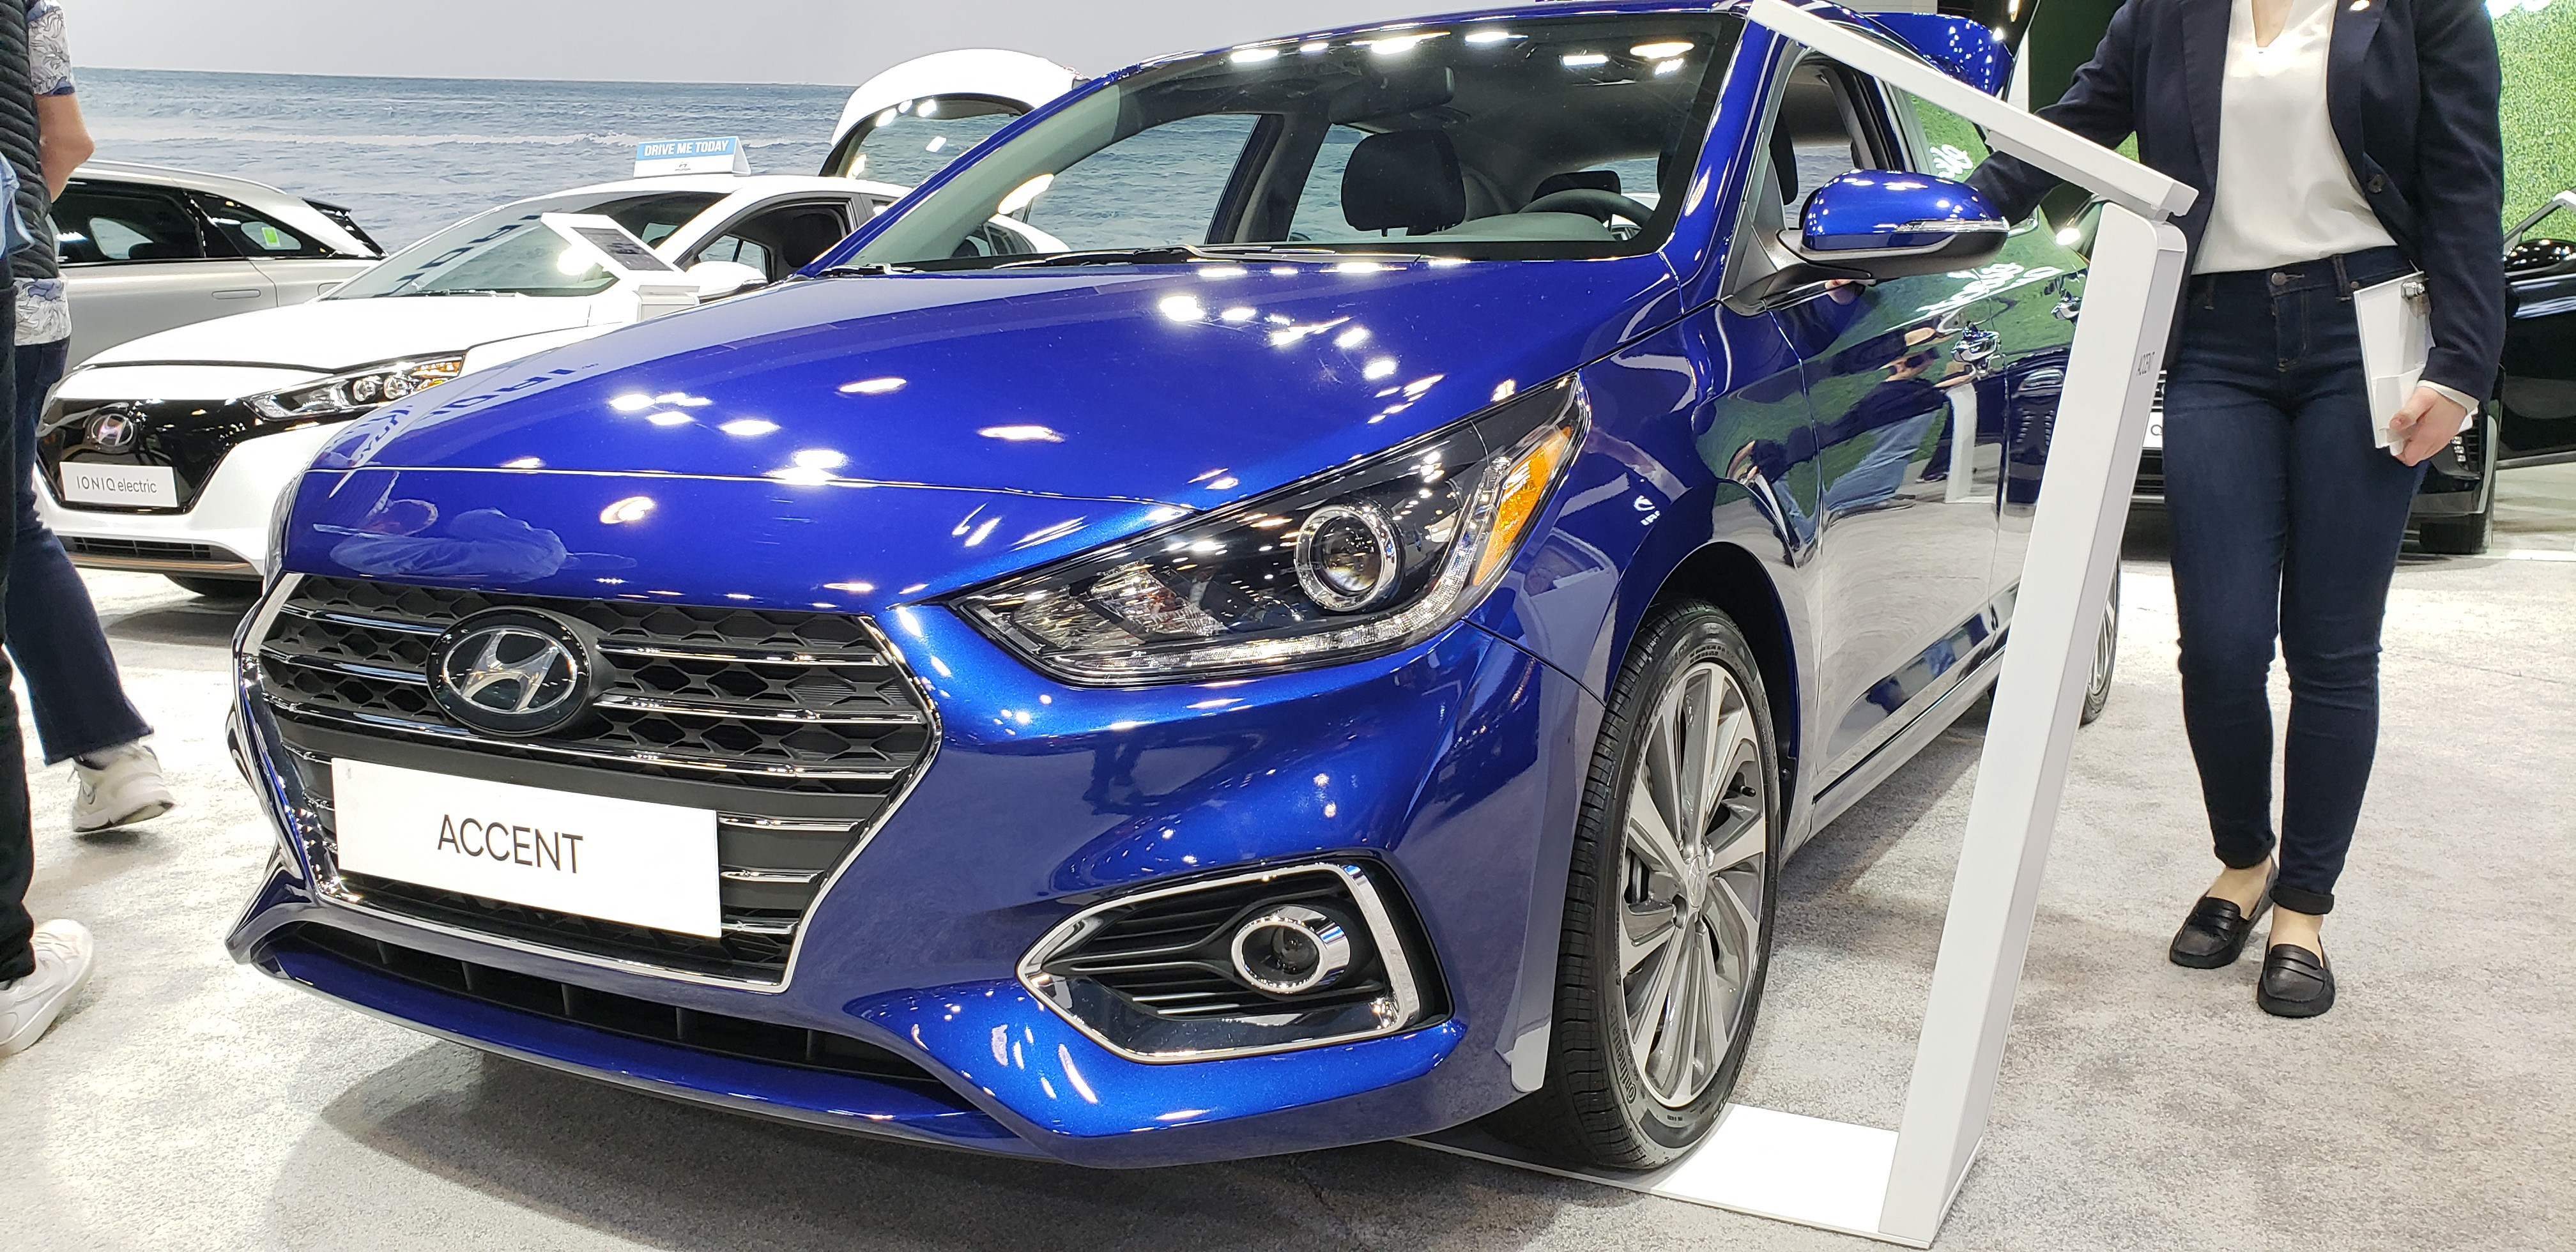 5 Surprisingly Affordable Cars Under 15k At Vancouver International Auto Show